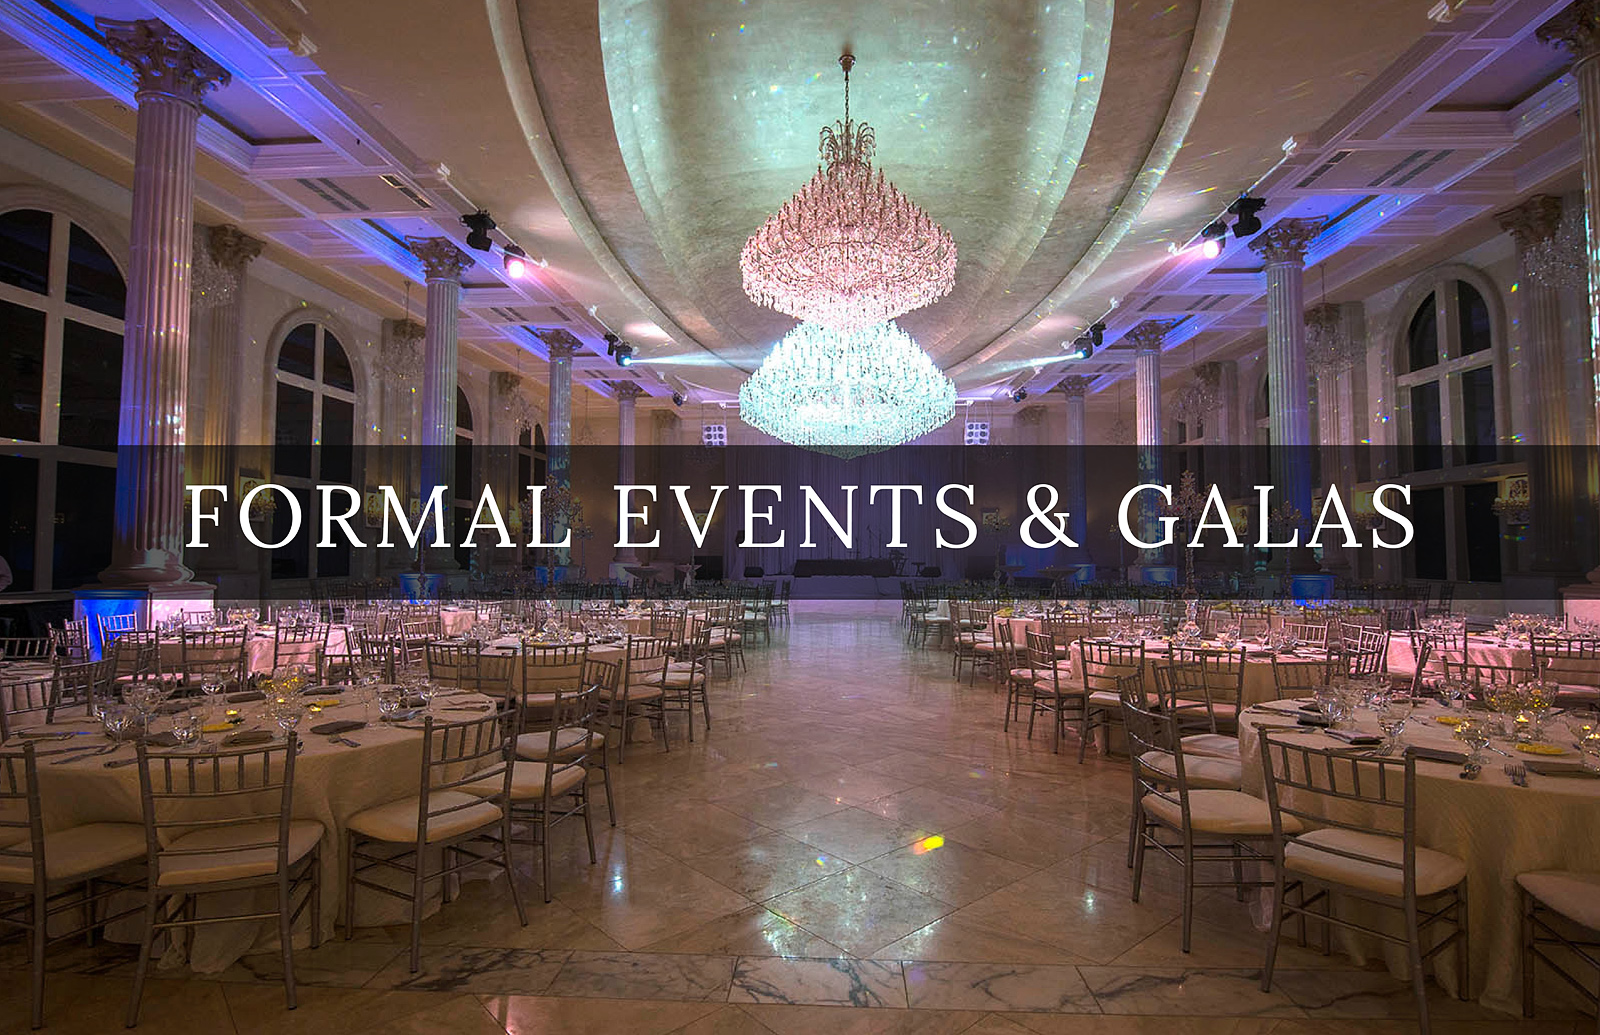 Formal Events & Galas